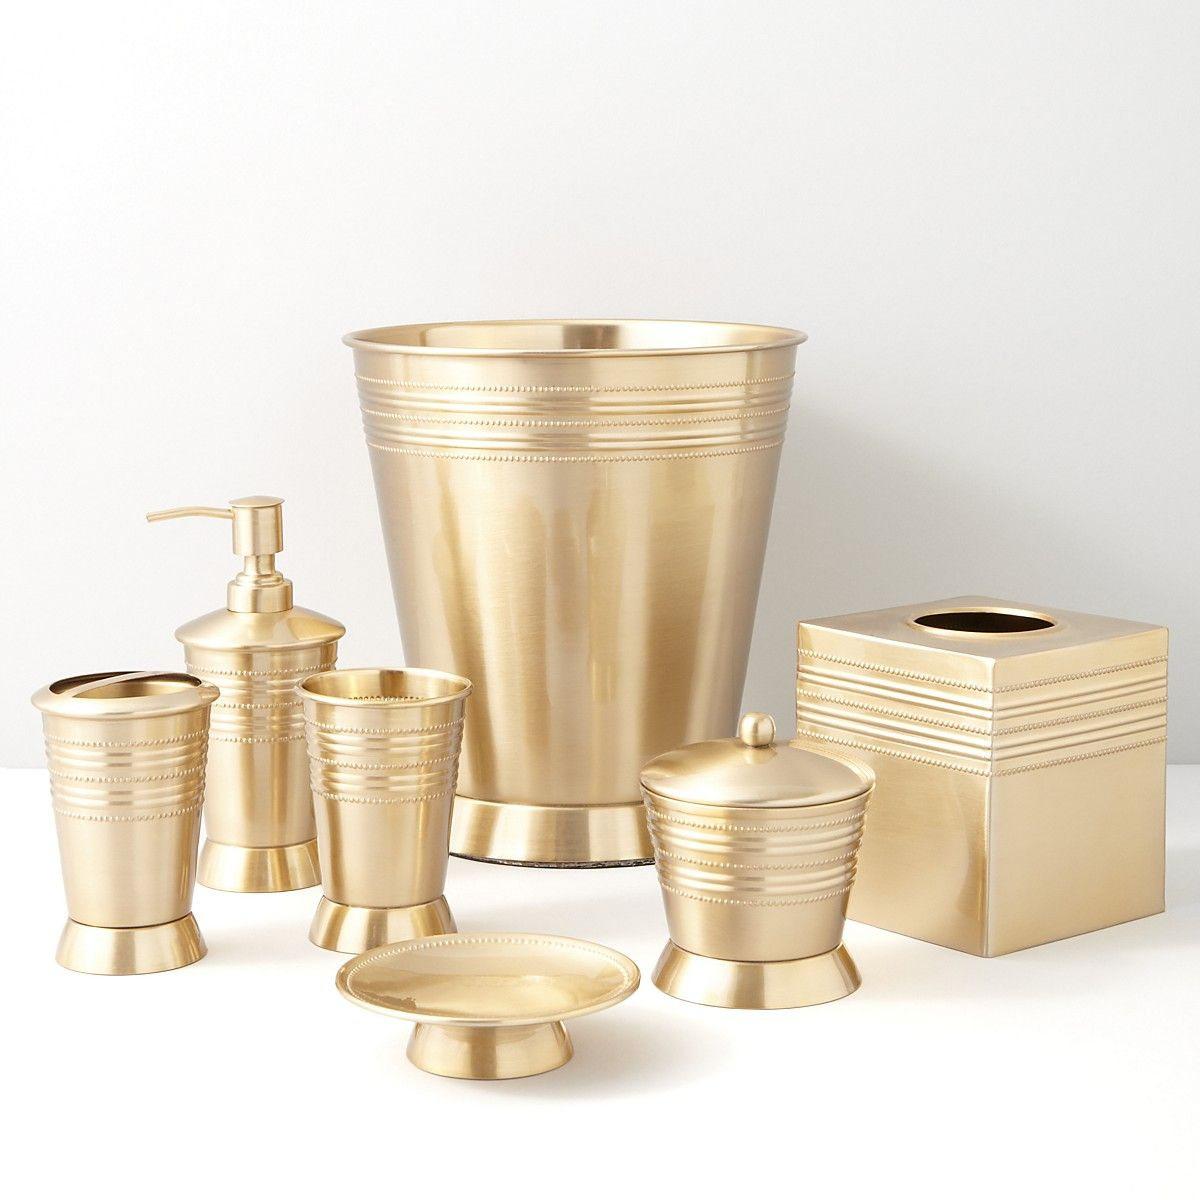 New metallic bead satin brass by paradigm trends bath for Bathroom and accessories